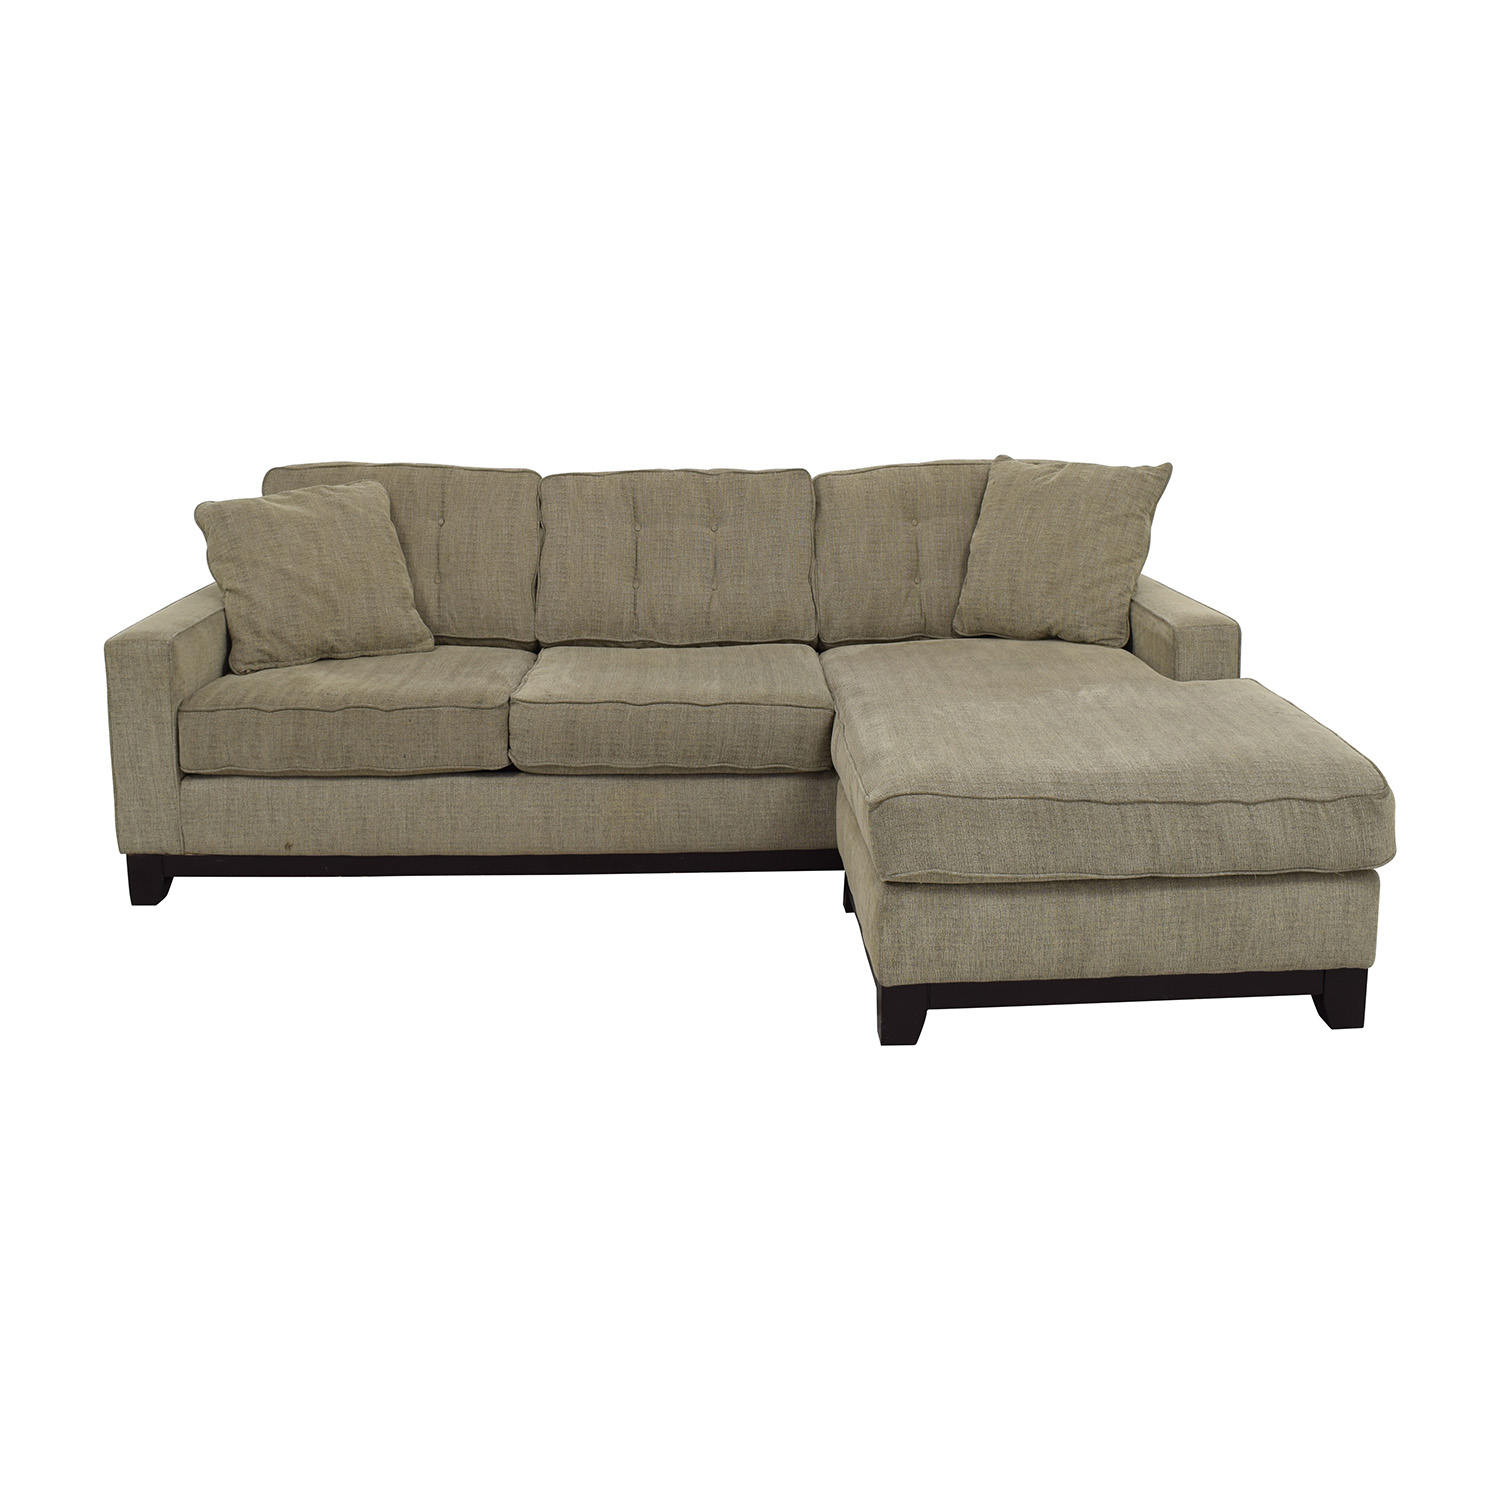 Grey L-Shaped Tufted Sectional with Right Chaise nj